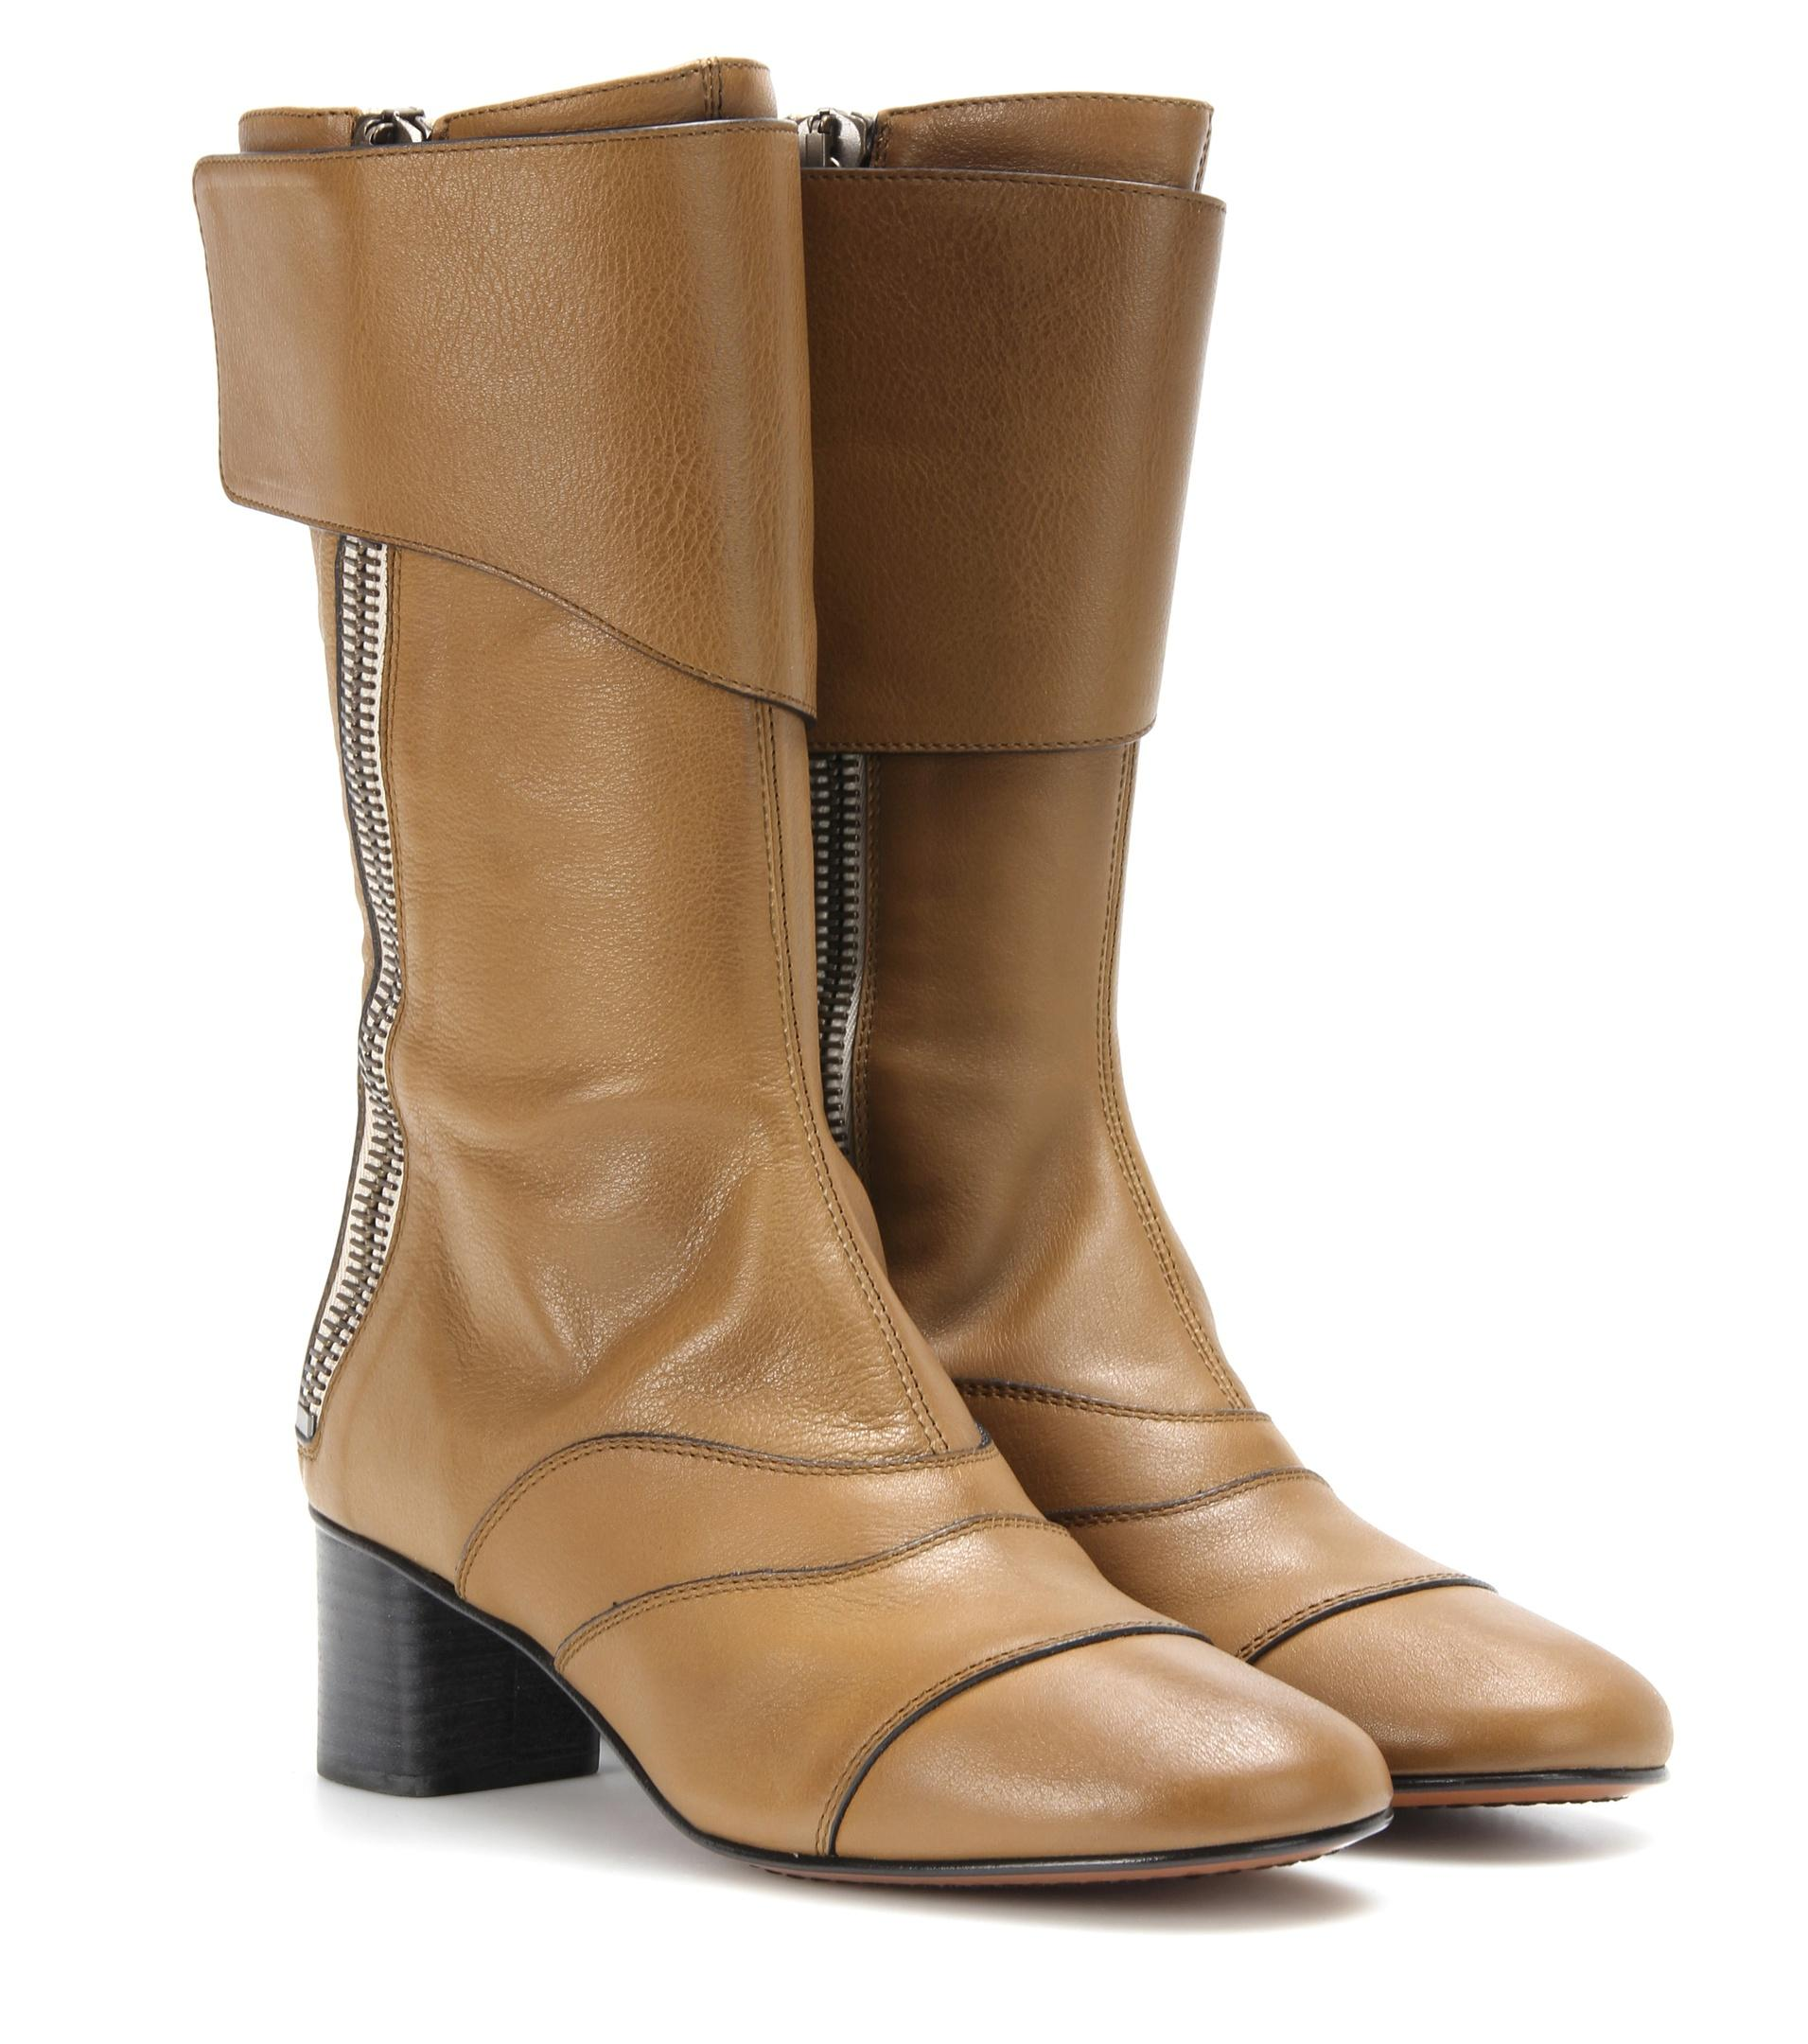 lyst chlo lexie leather mid calf boots in brown. Black Bedroom Furniture Sets. Home Design Ideas